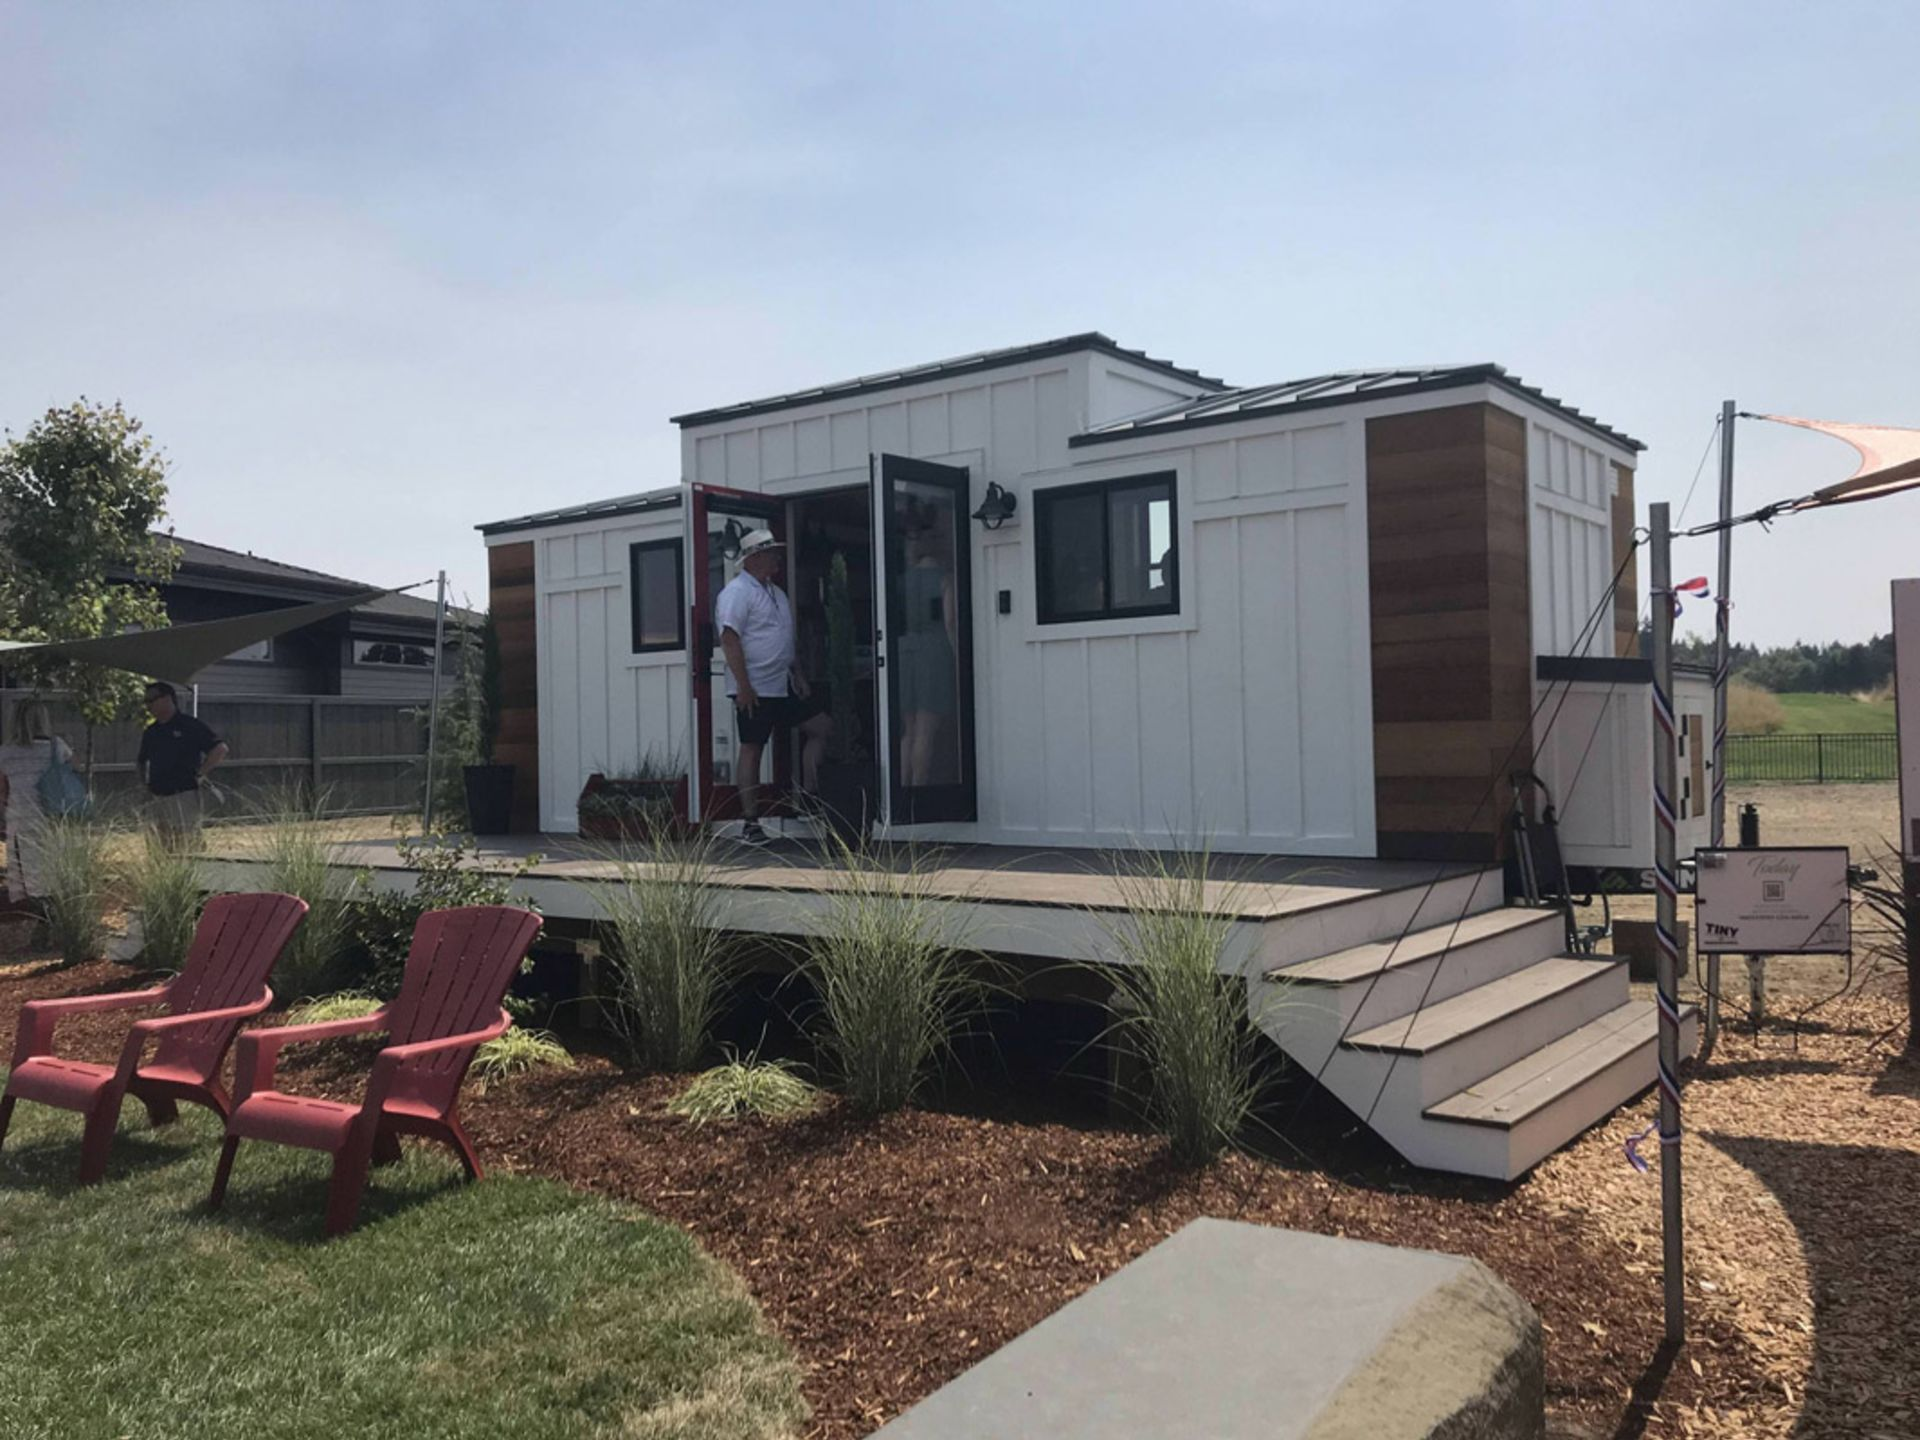 My dream home is a Tiny Home